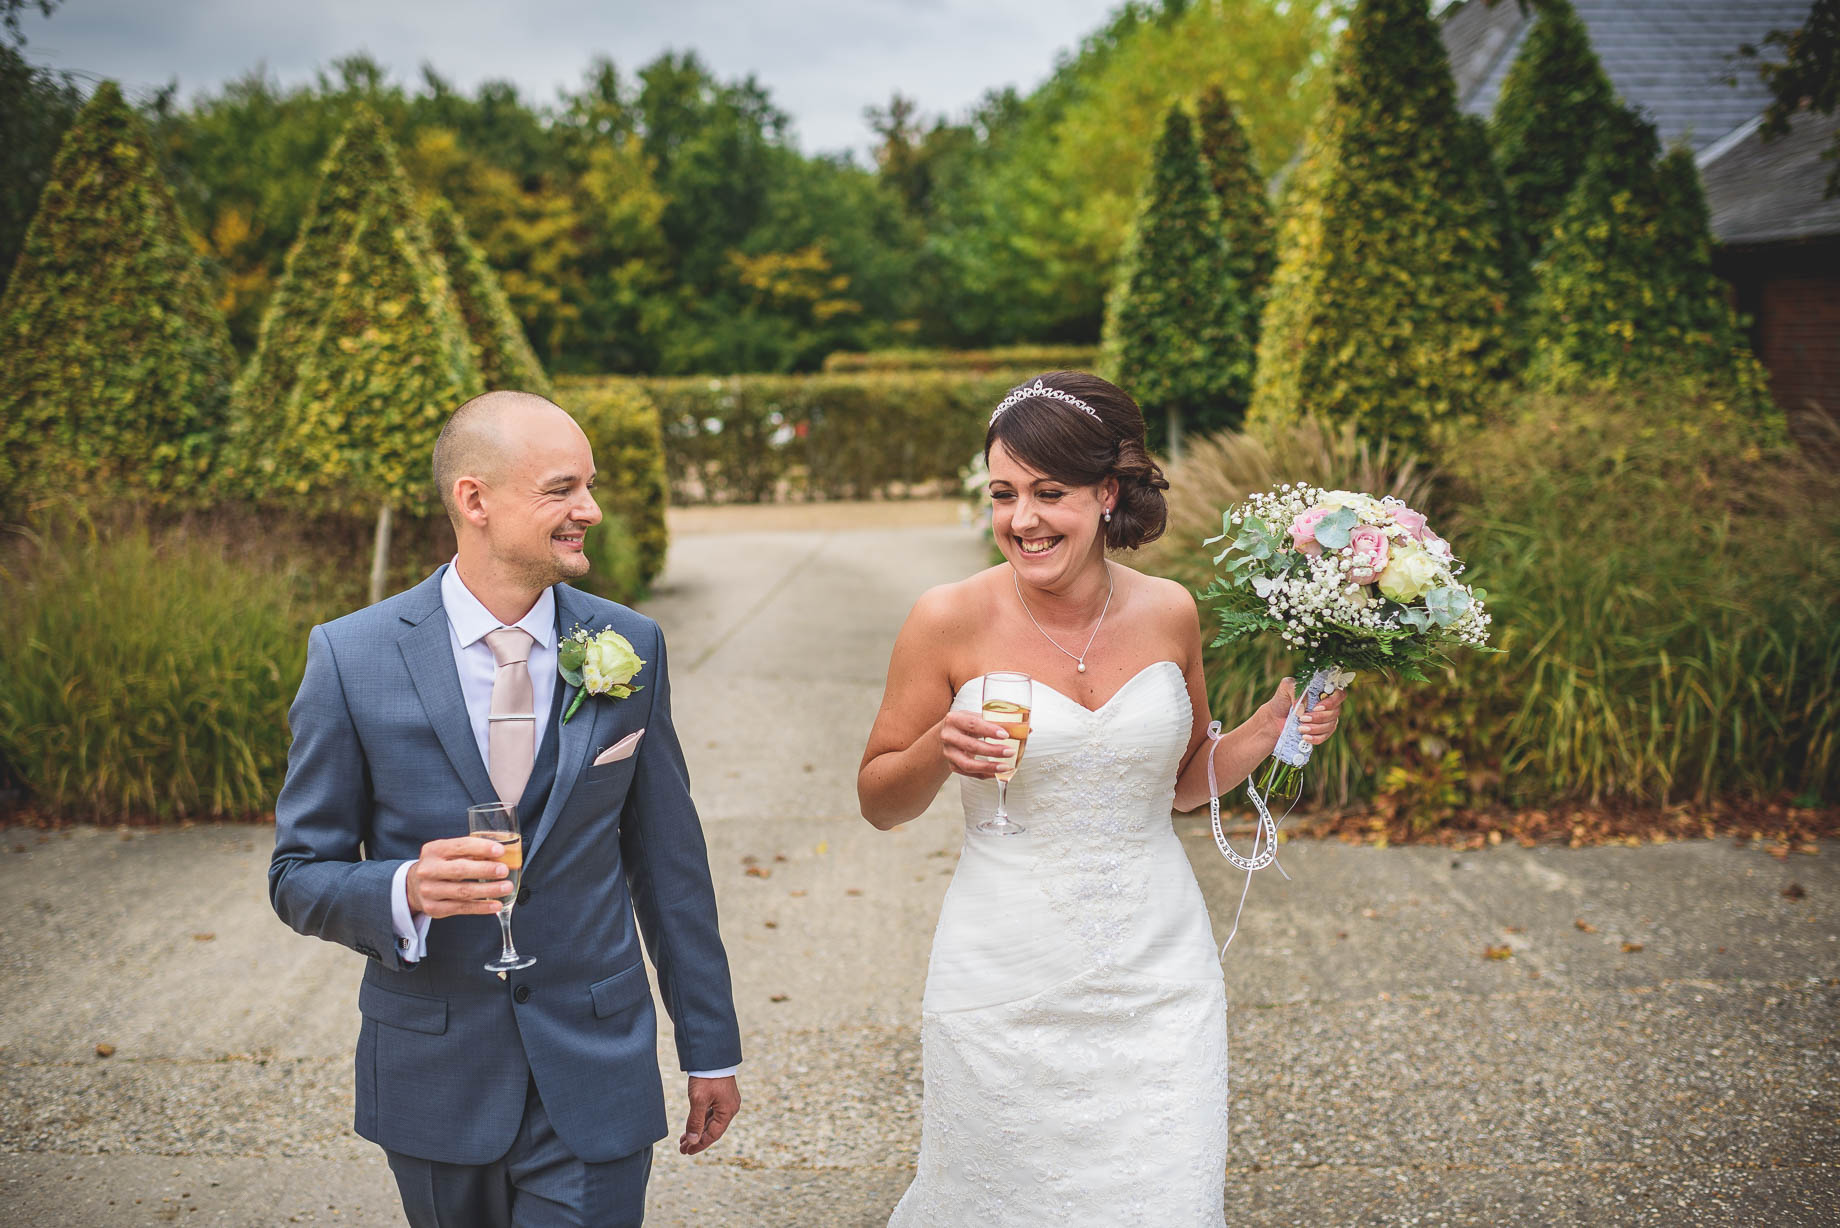 Bury Court Barn wedding photography - Guy Collier Photography - Karen and John (66 of 166)